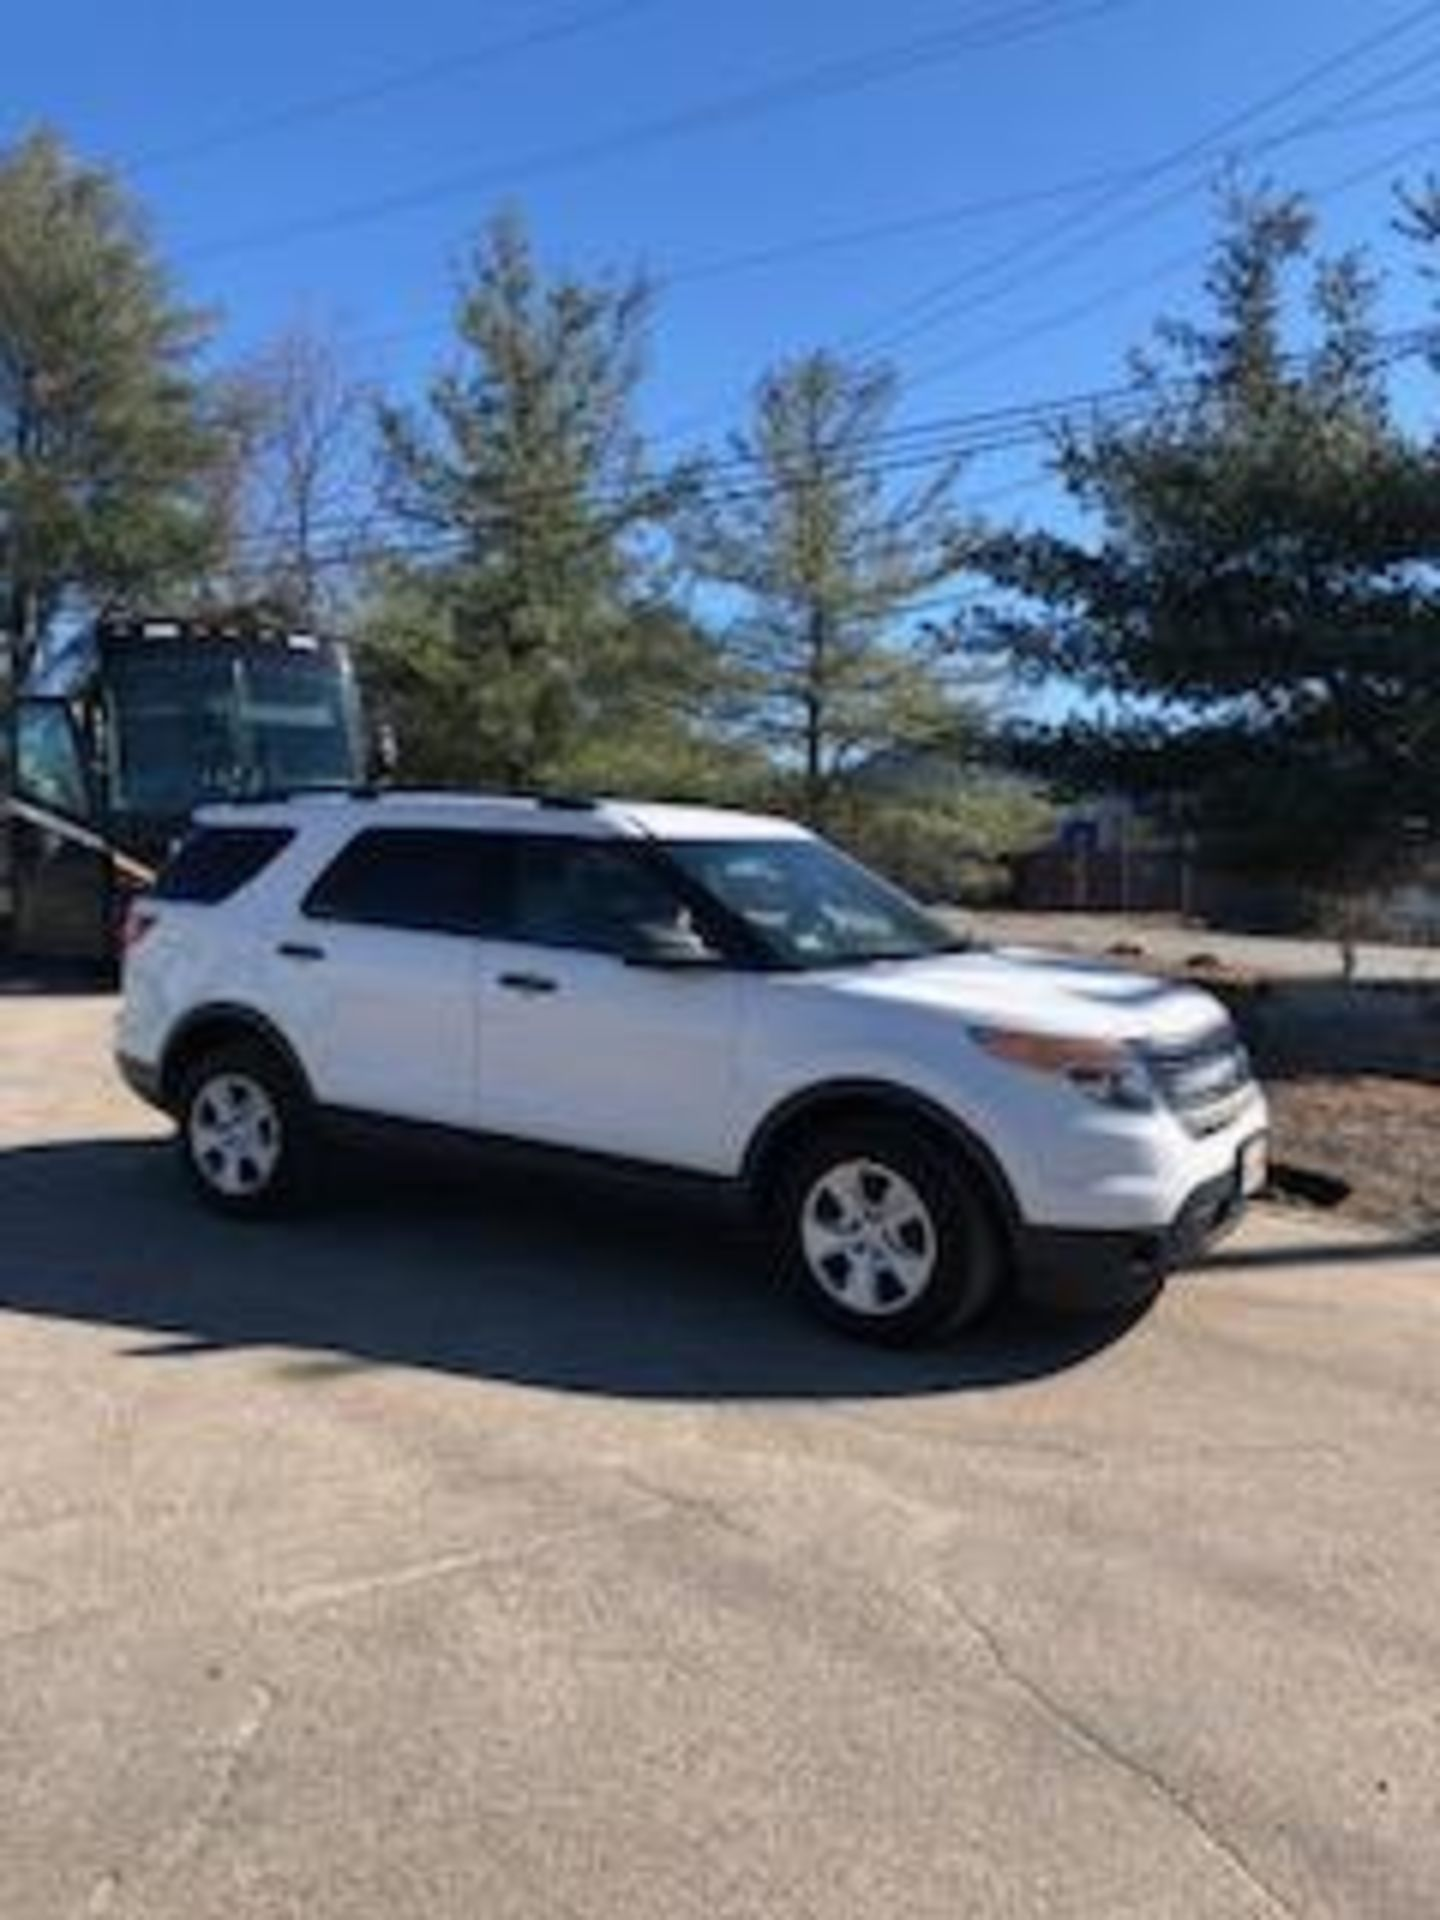 Lot 87 - 2013 FORD EXPLORER SUV, 6 CYLINDER, 4 Door, 4x4, Gas, 3rd Row Seating, Odom: 131,000, Vin#: